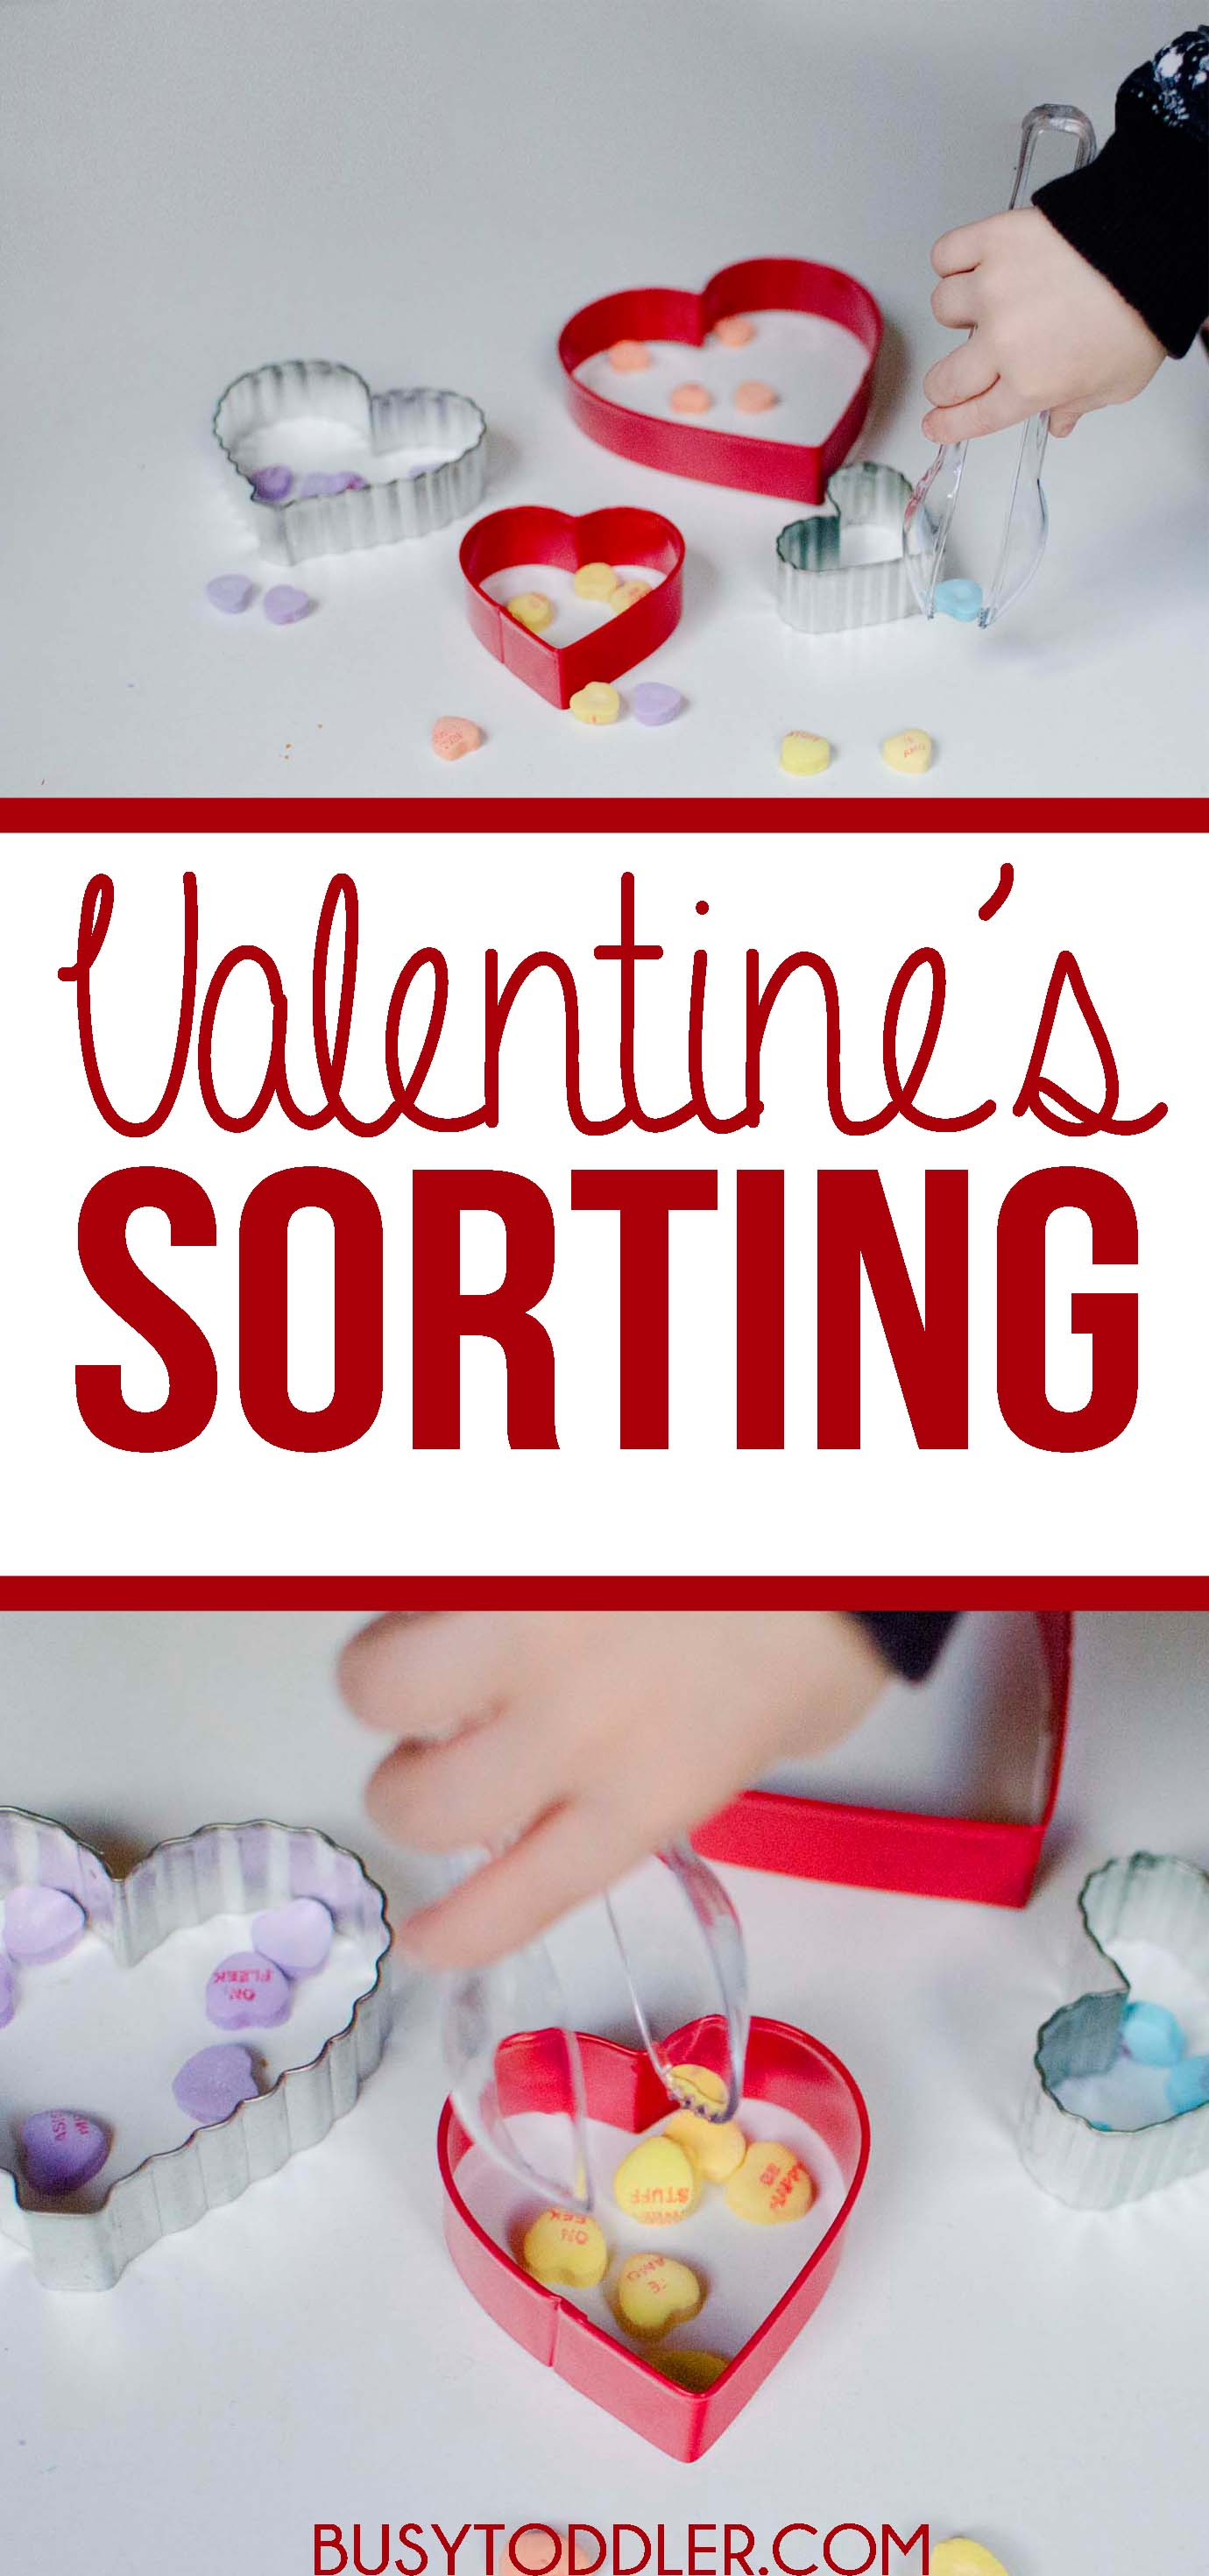 VALENTINE'S DAY SORTING ACTIVITY: A fun toddler activity sorting conversation hearts.